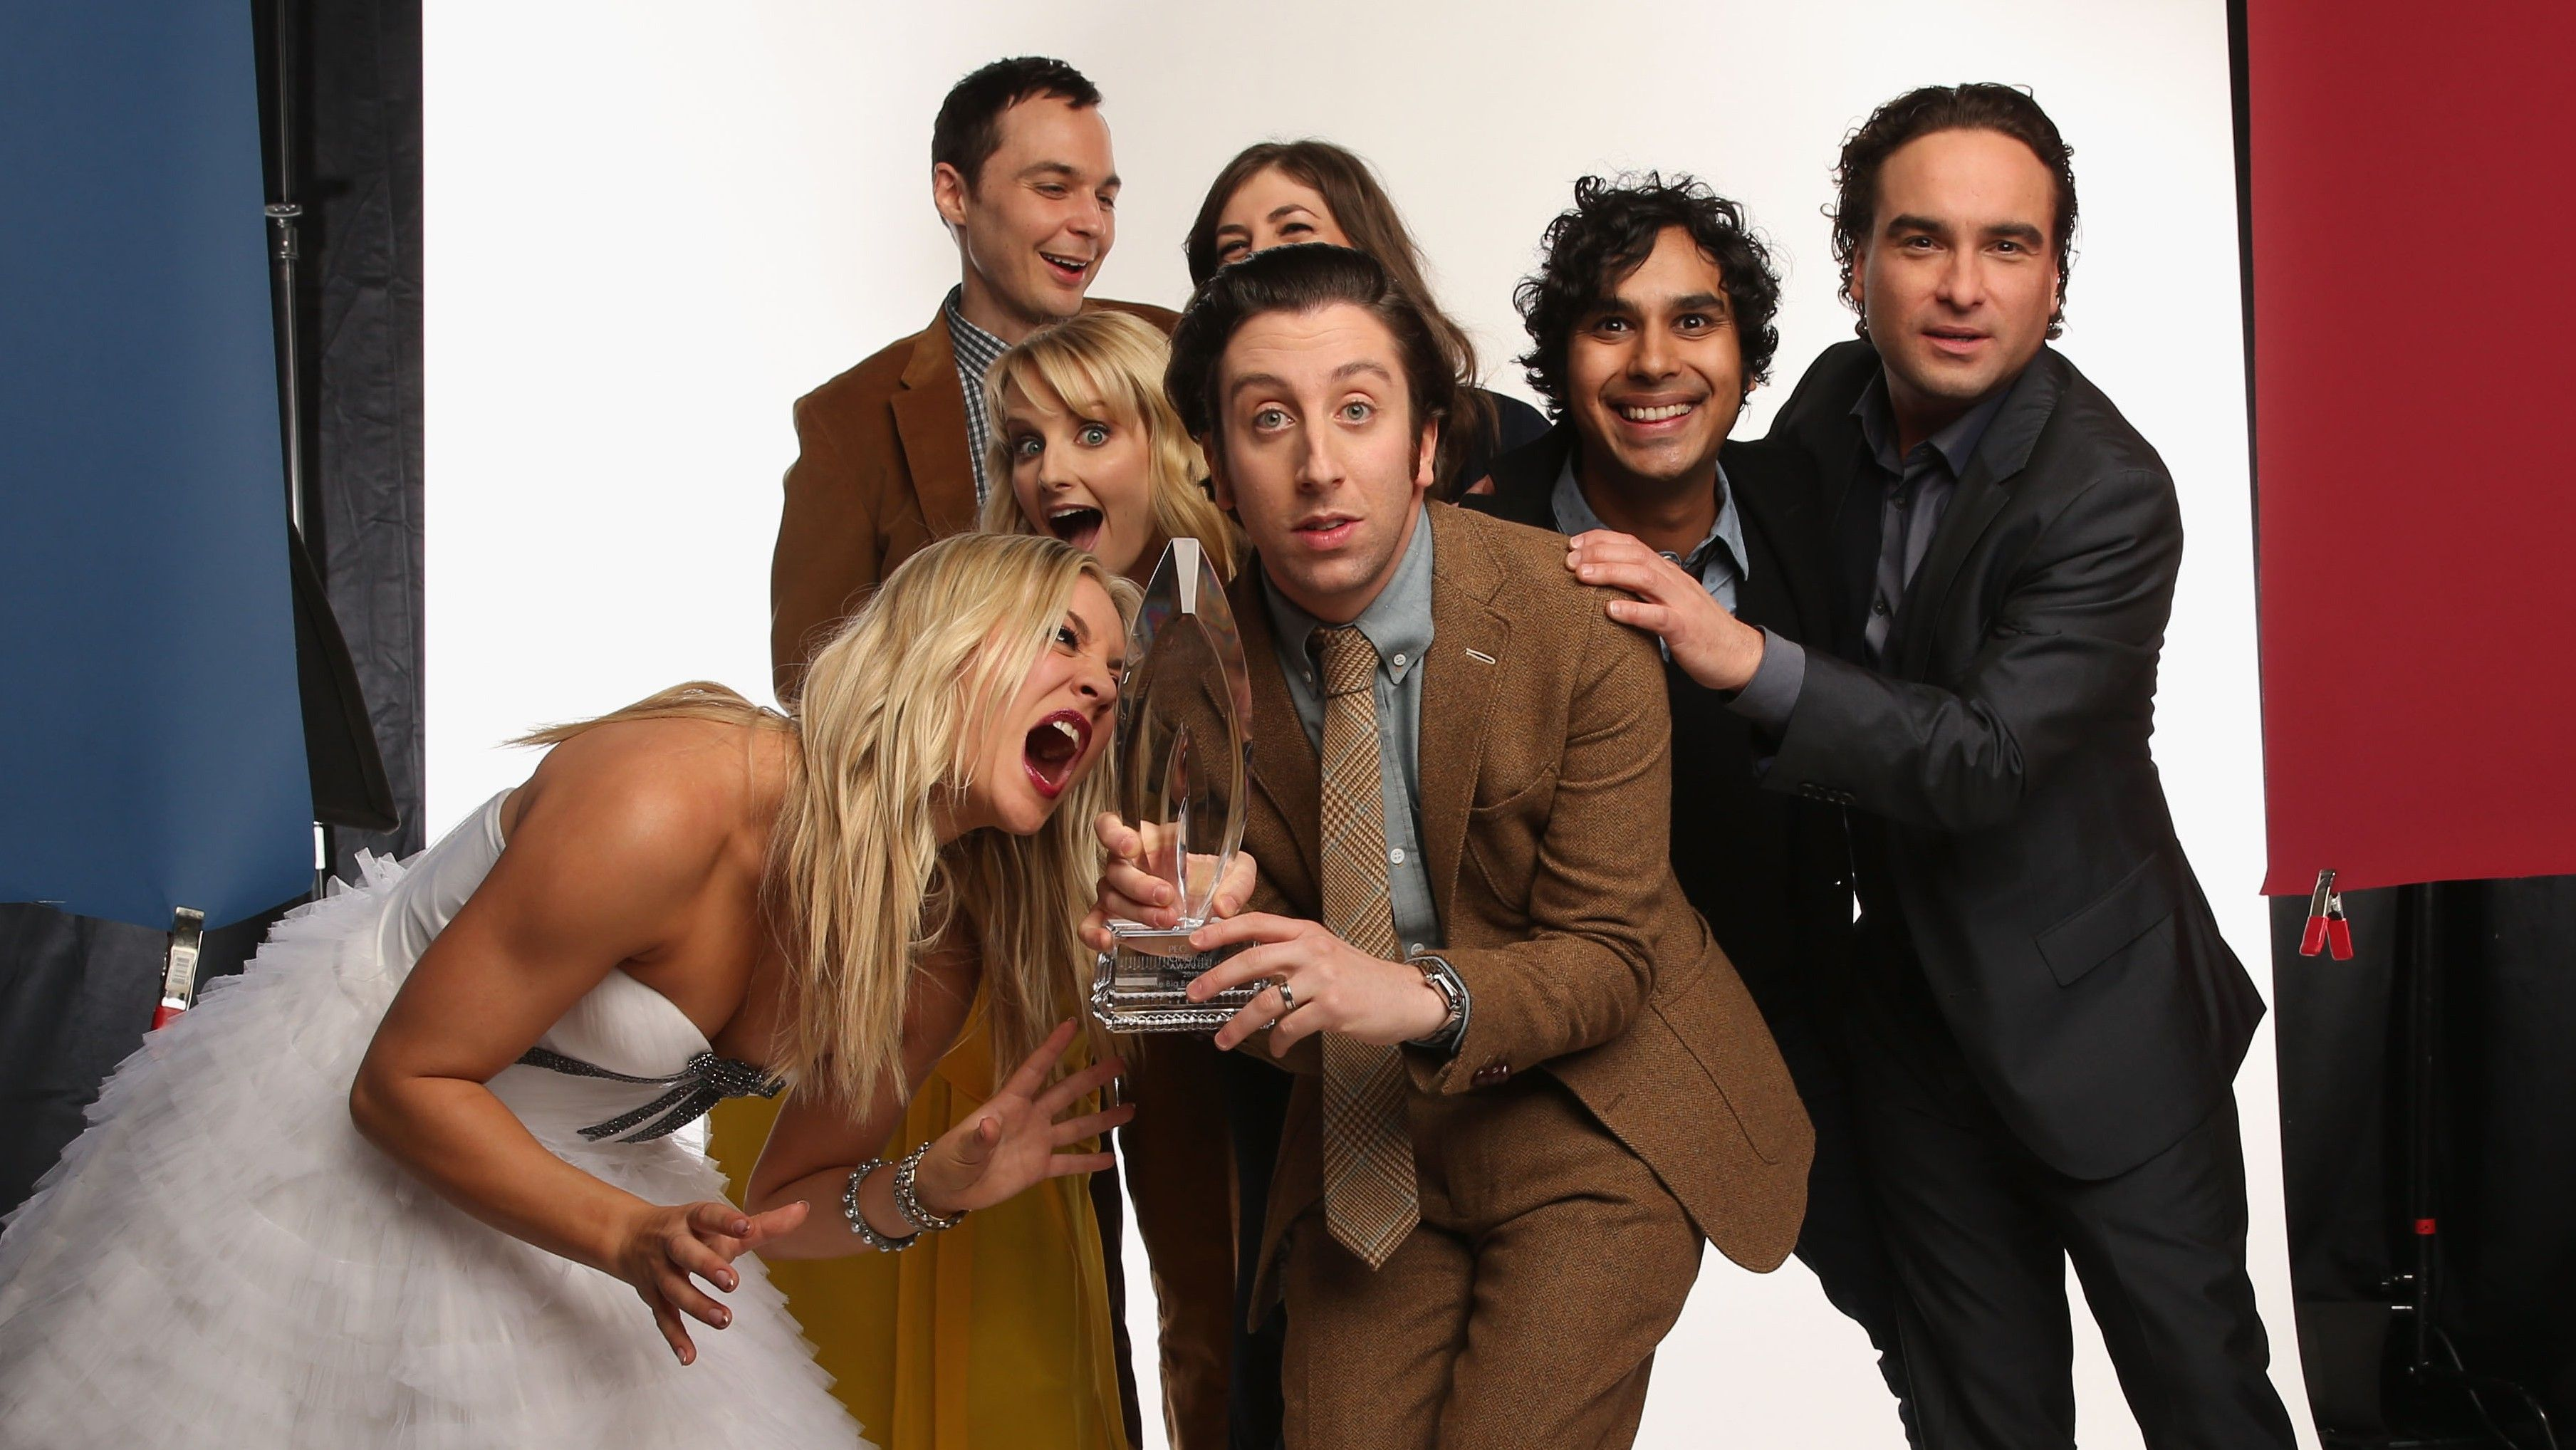 The Big Bang Theory Cast Are Set To Earn 10 Million A Year Once